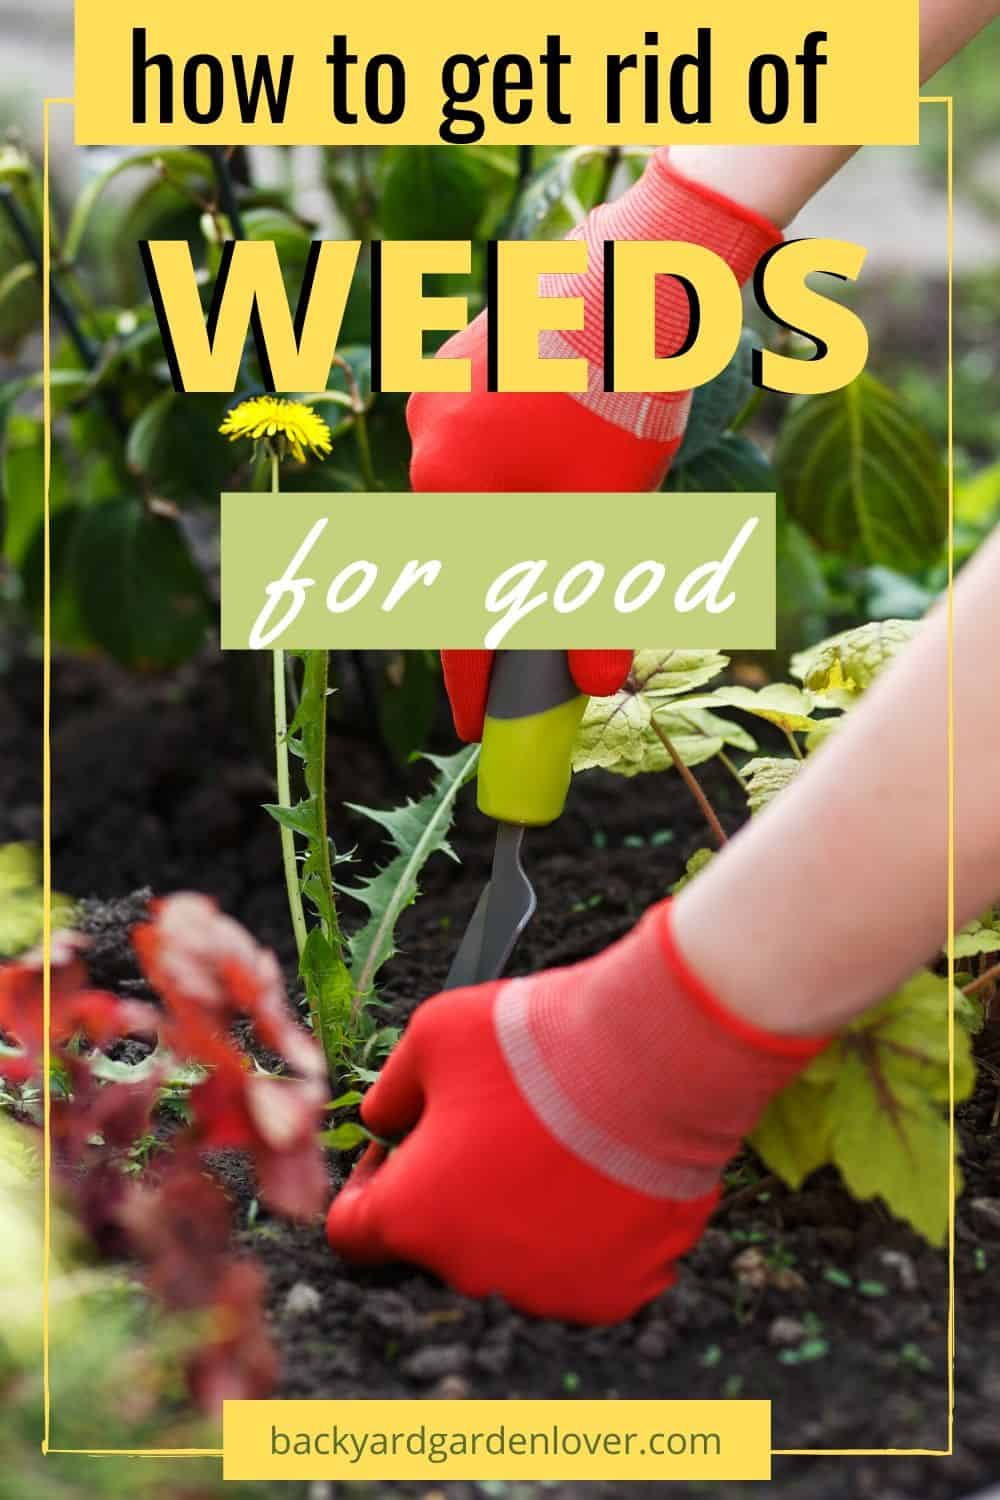 Woman wearing red garden gloves pulling weeds